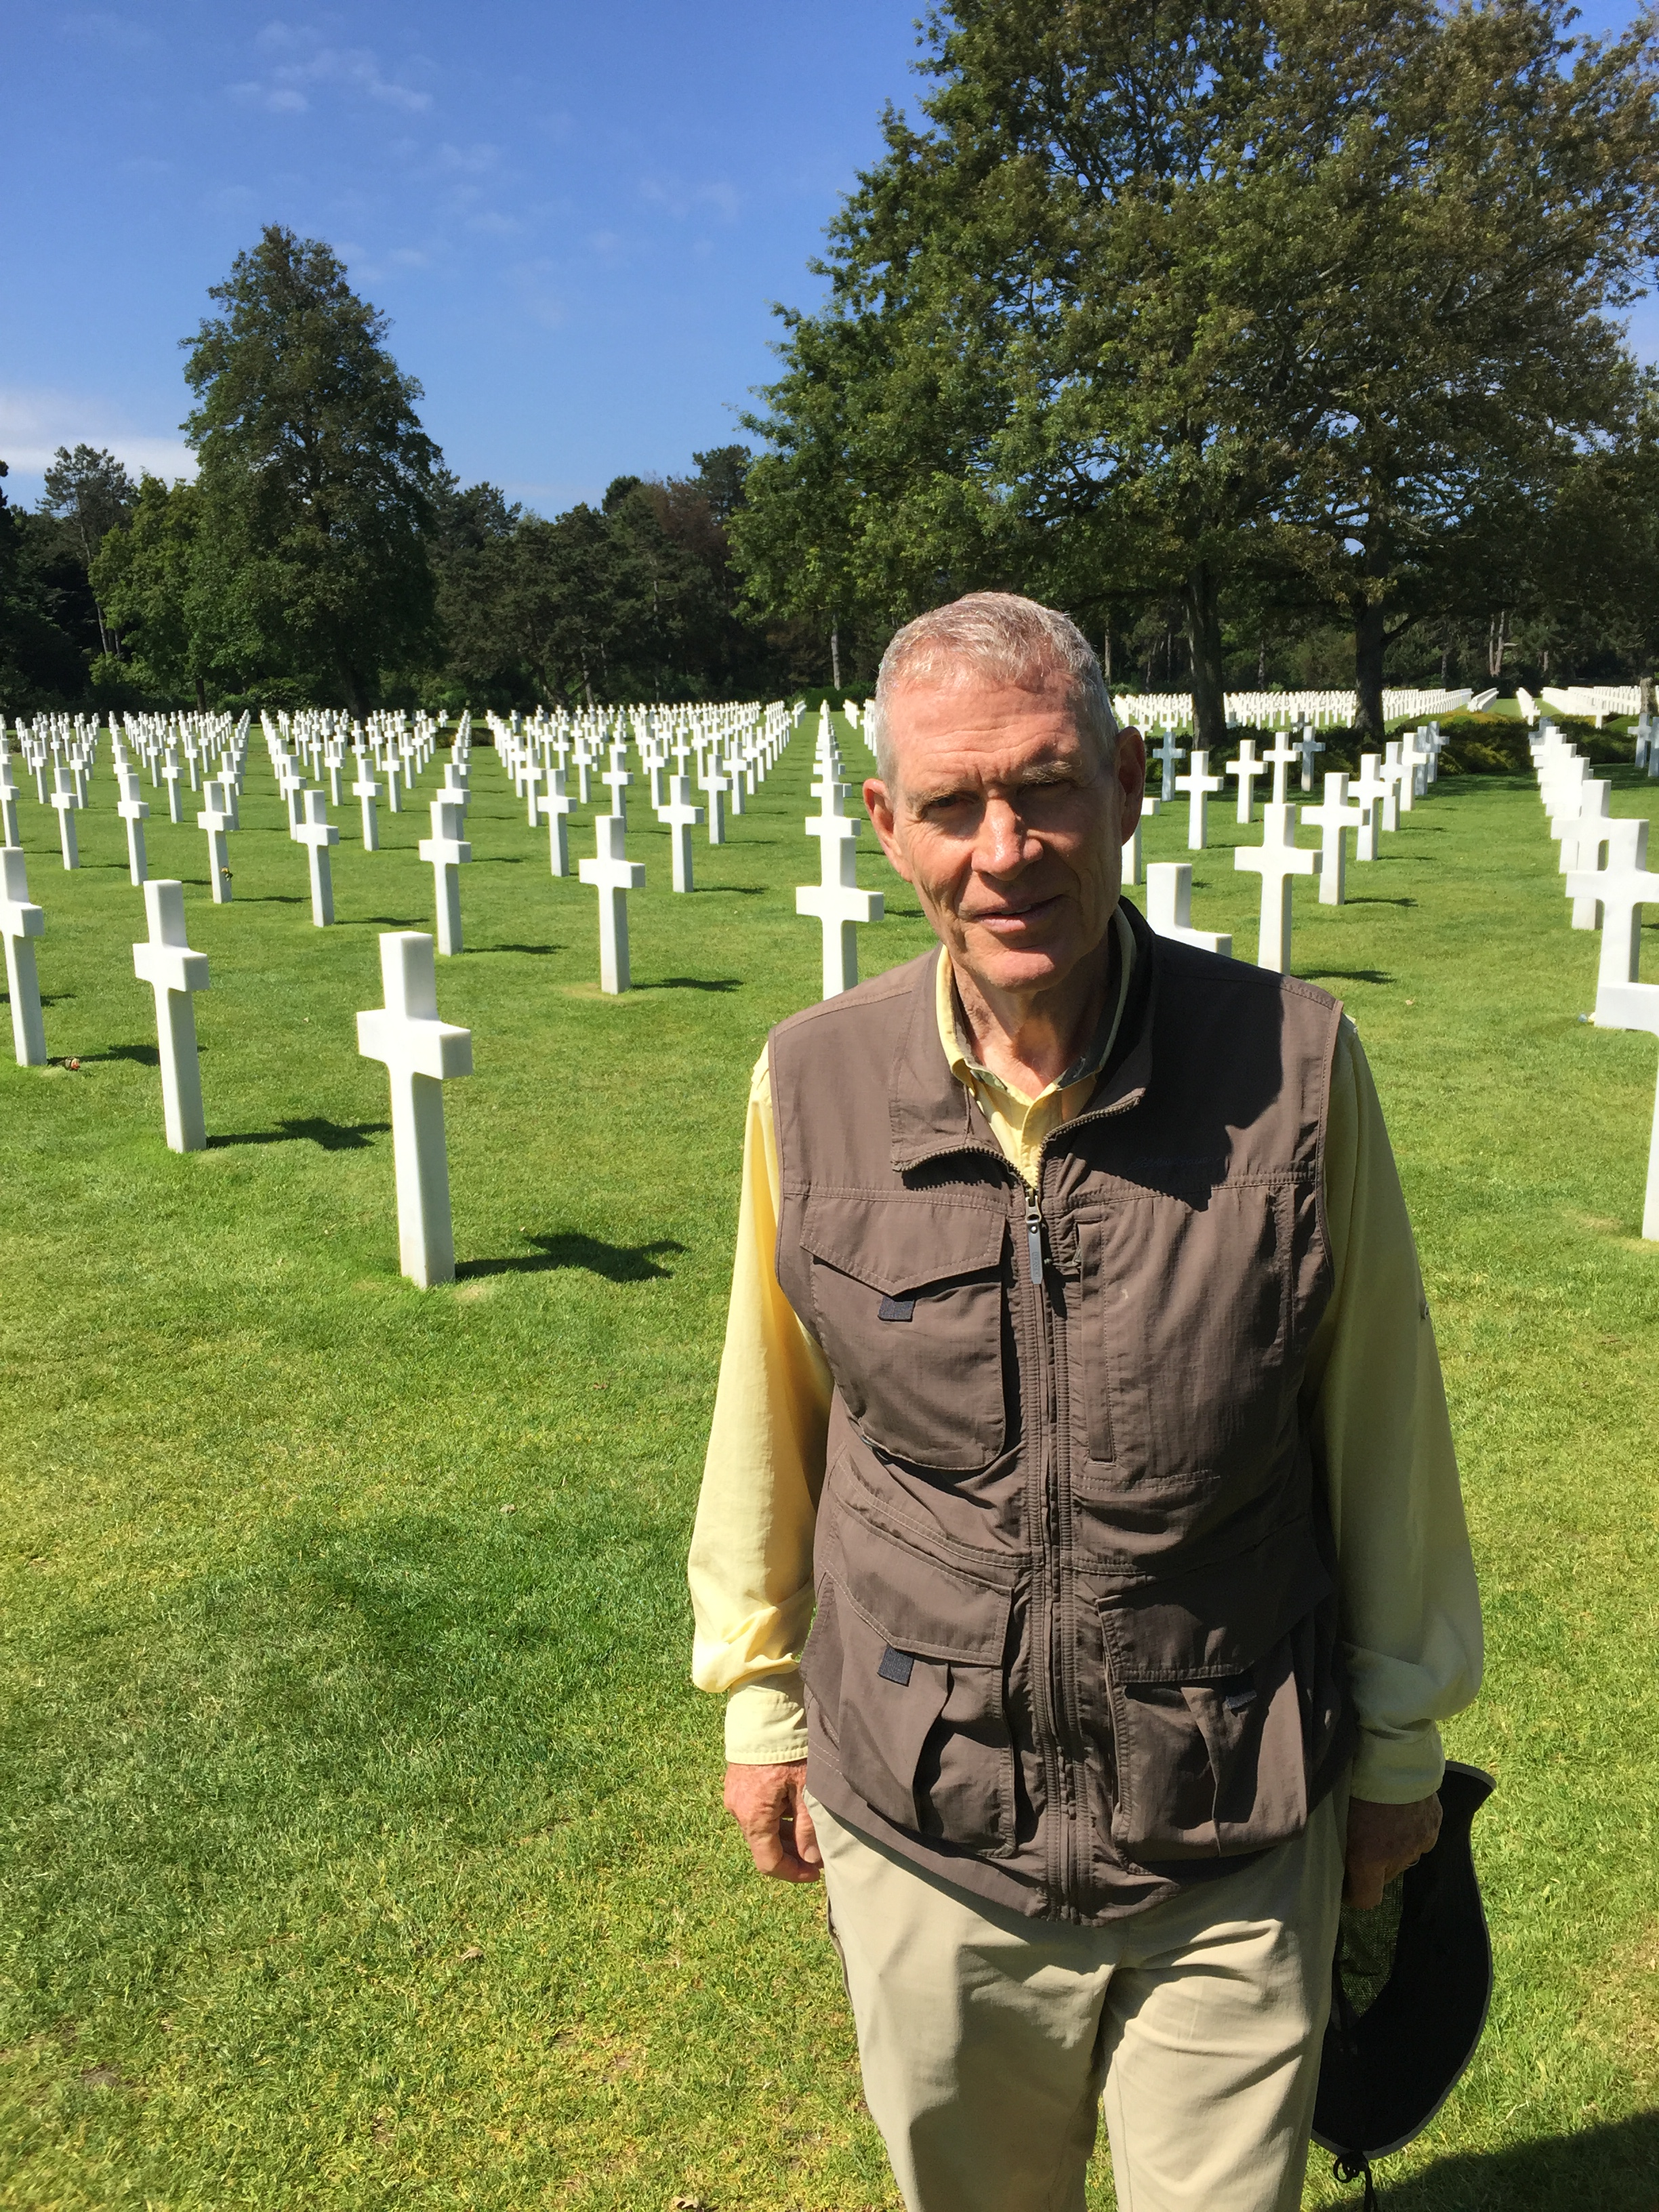 Larry Lunt at the Normandy American Cemetery and Memorial